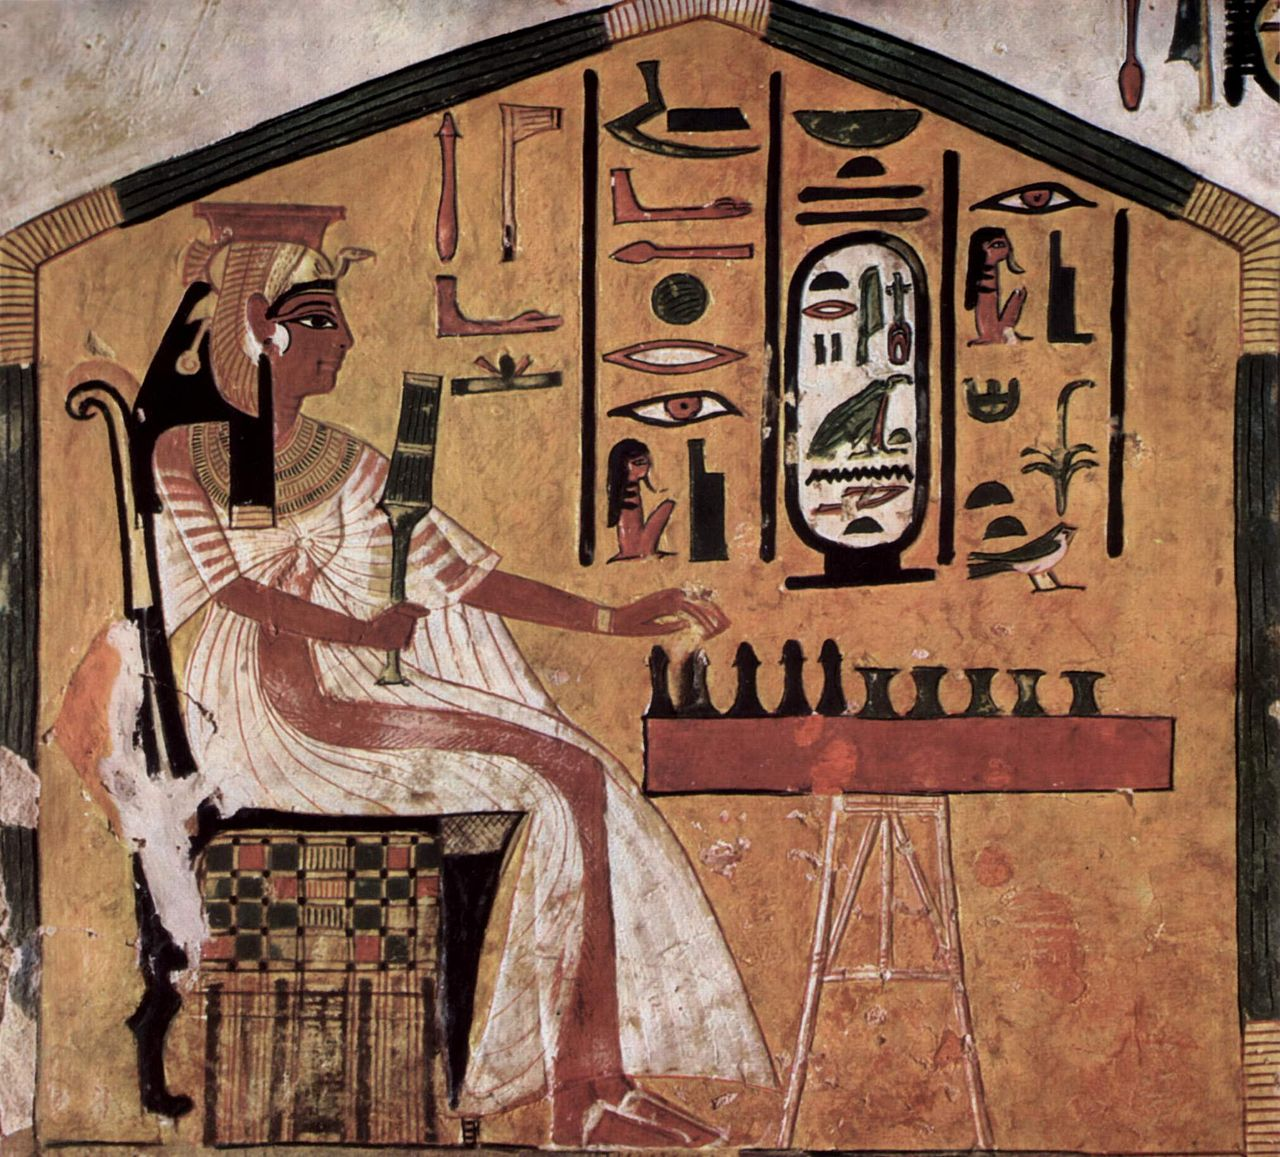 senet, ancient board game from Egypt